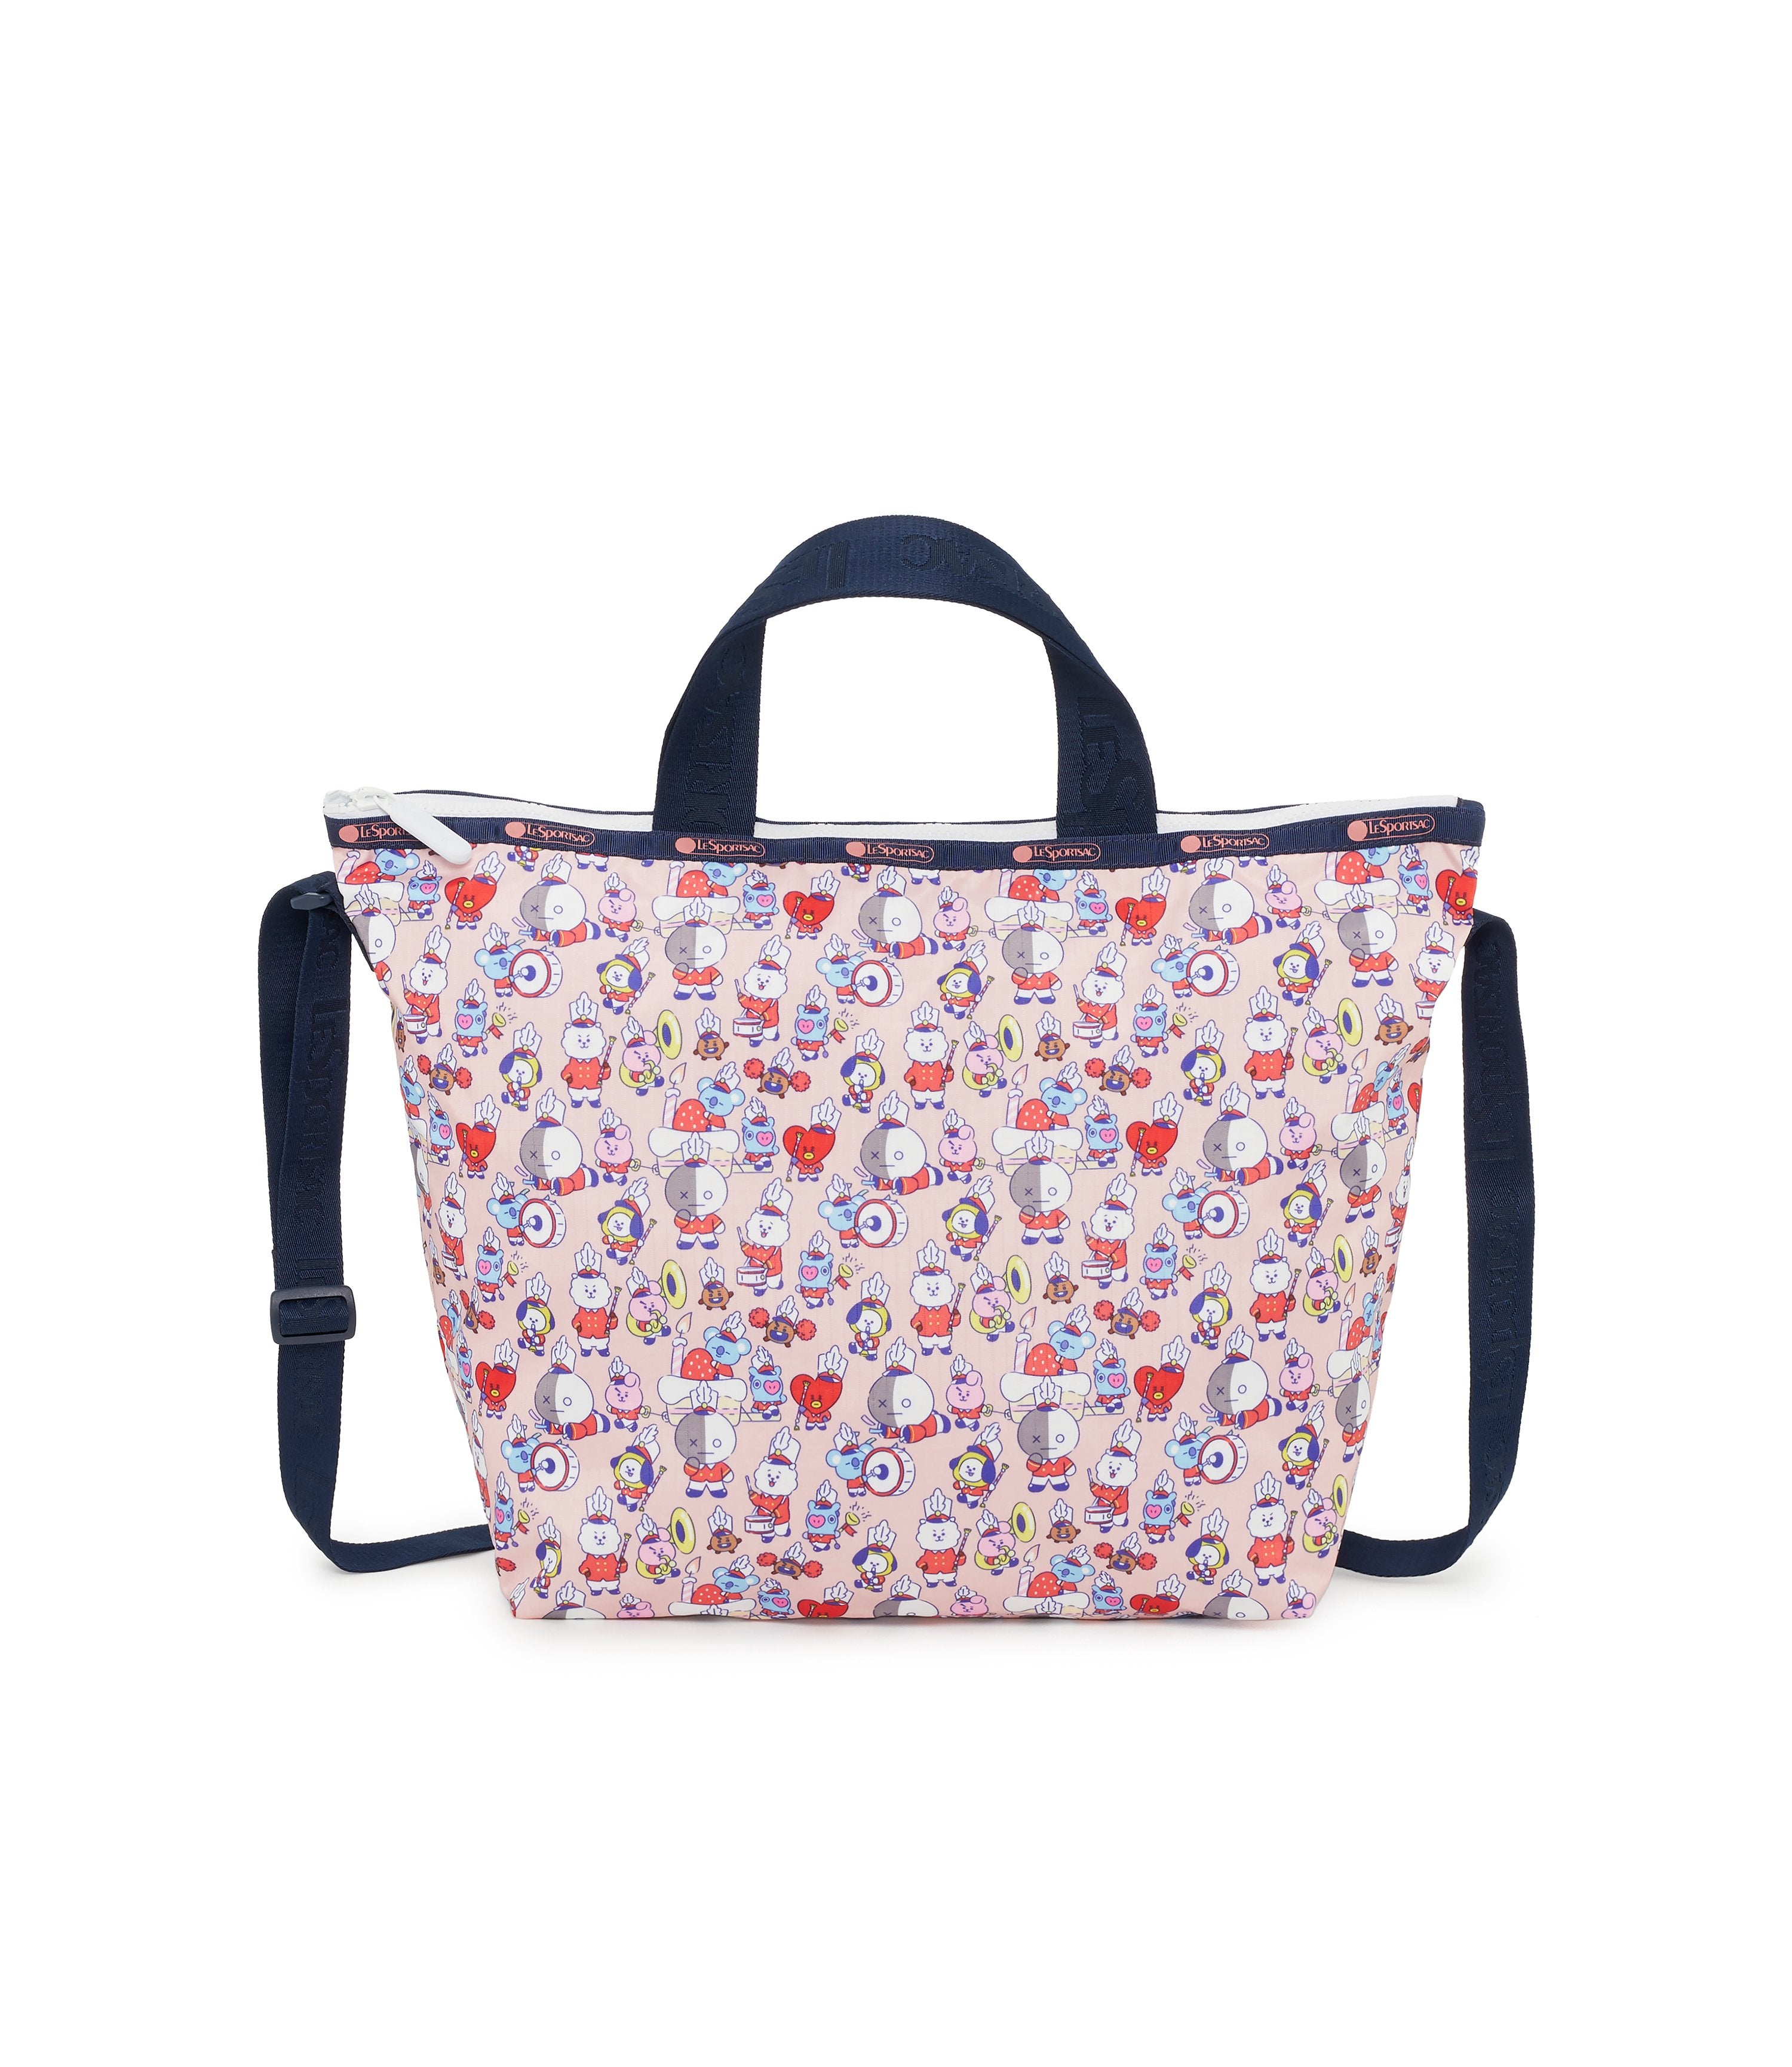 Easy Carry Tote, Line Friends, BTS Tote Bags, LeSportsac, BT21 Multi, Pink